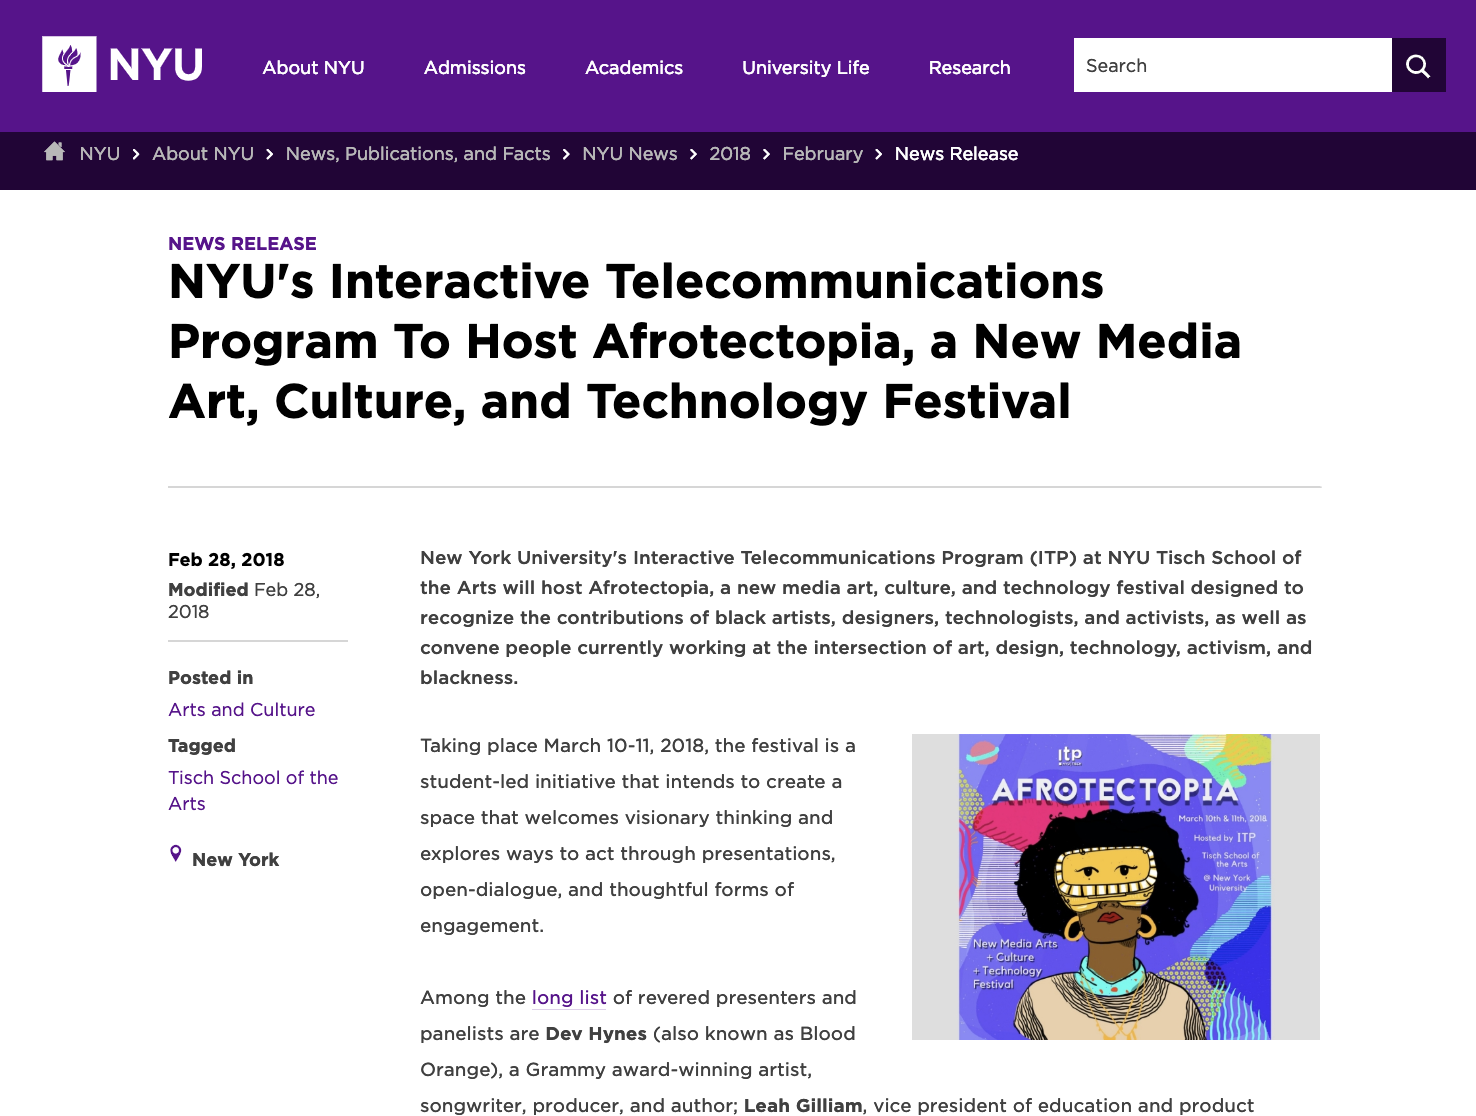 Press Release by New York University - March 2018